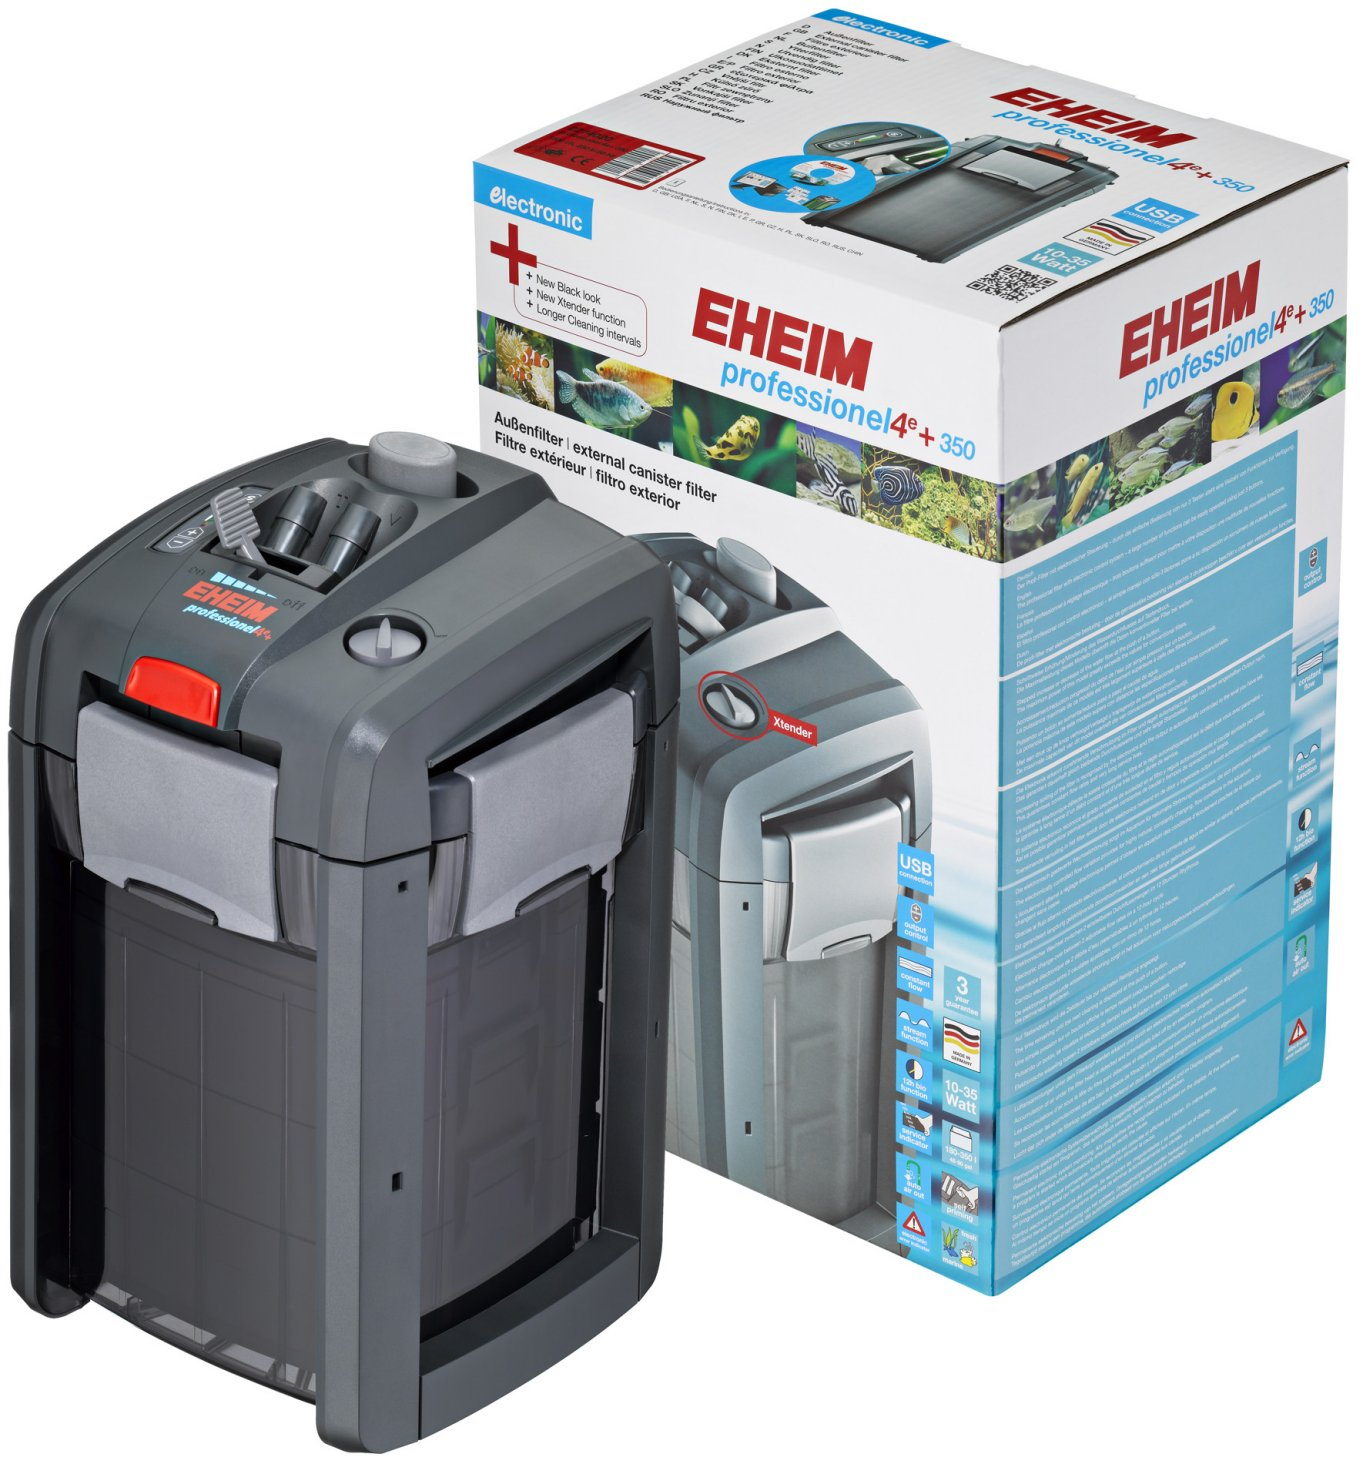 Shop EHEIM professionel 4e+ 350 electronic USB